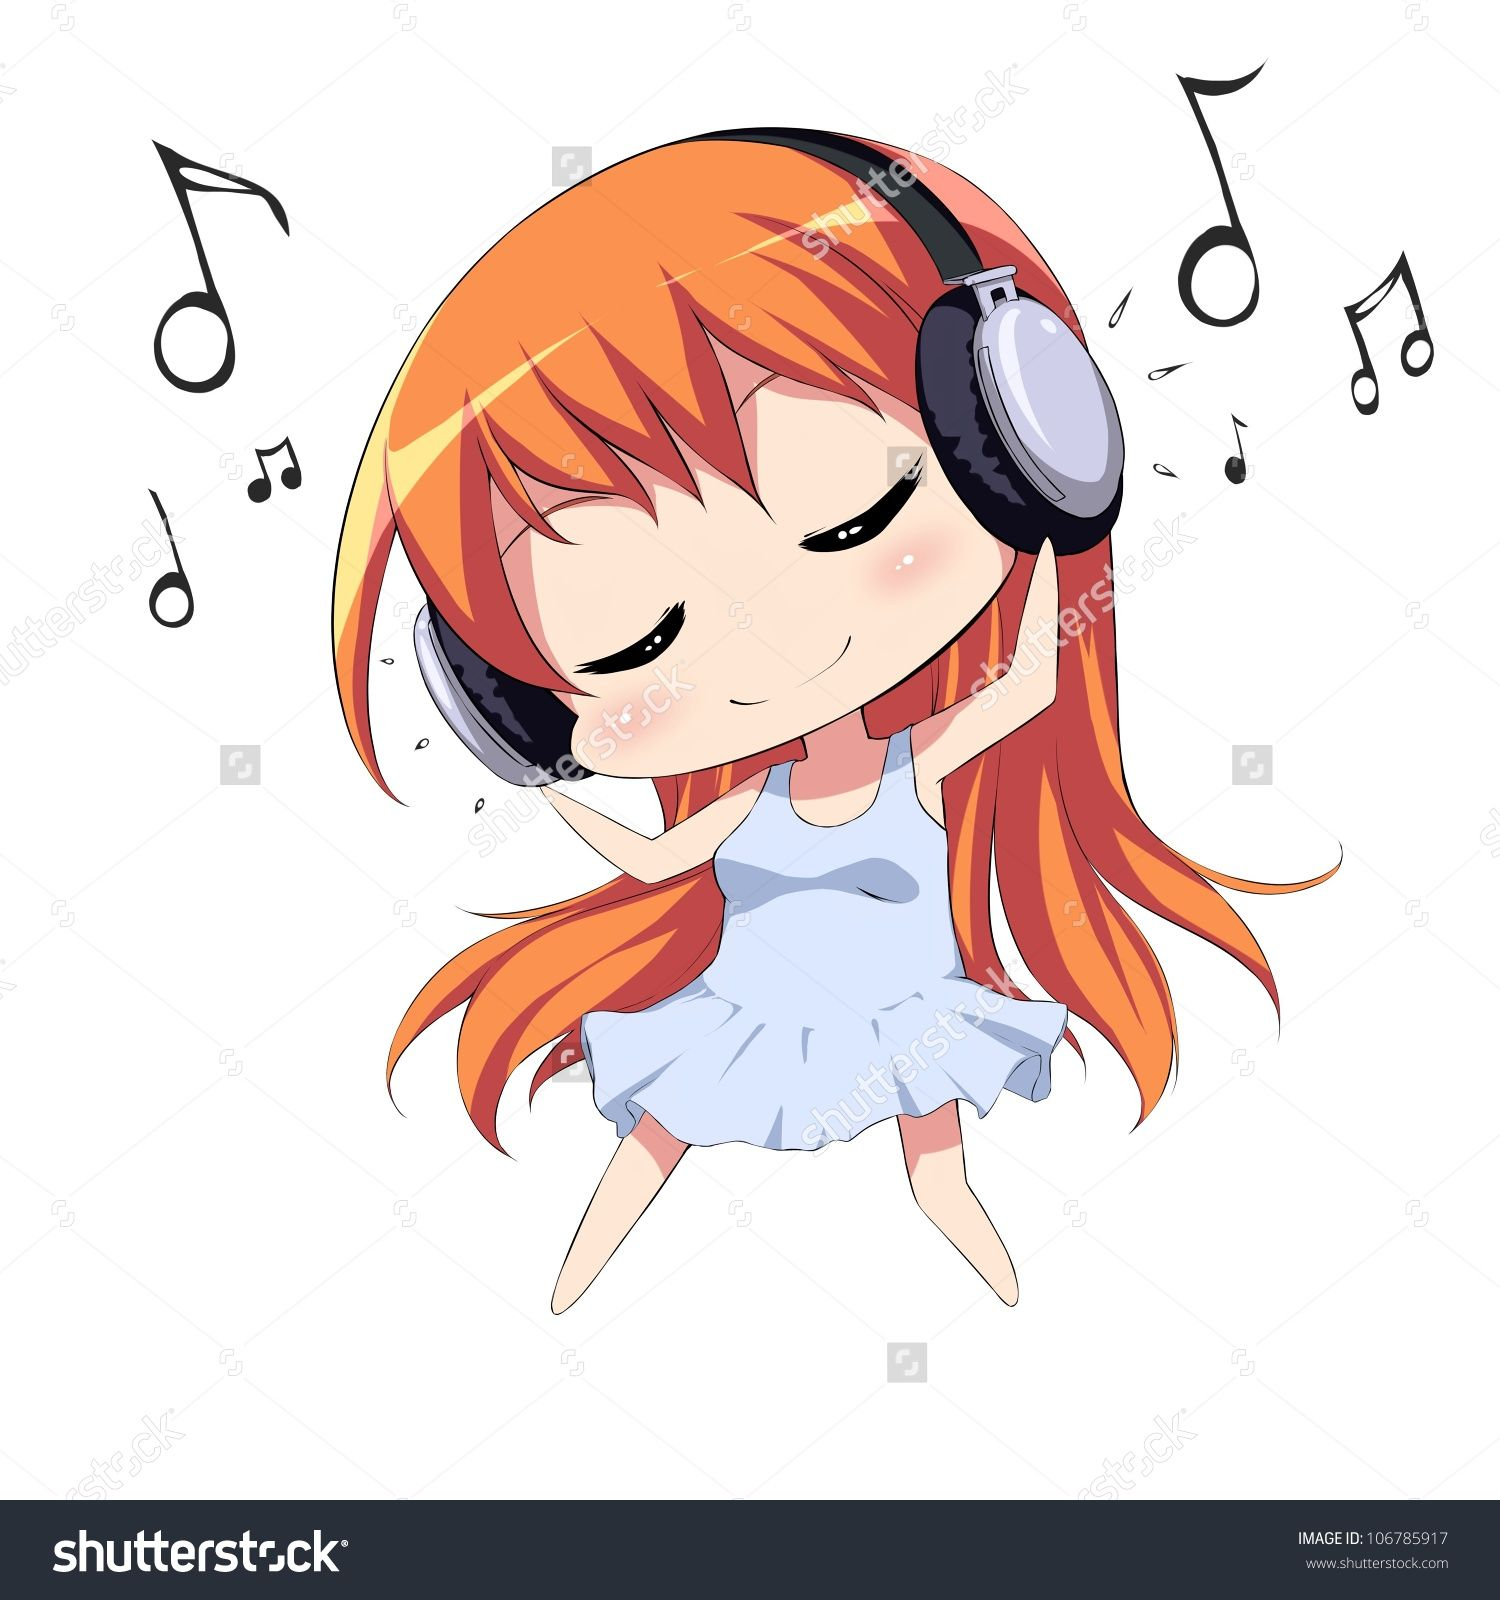 Anime Listening to Music Clip Art.